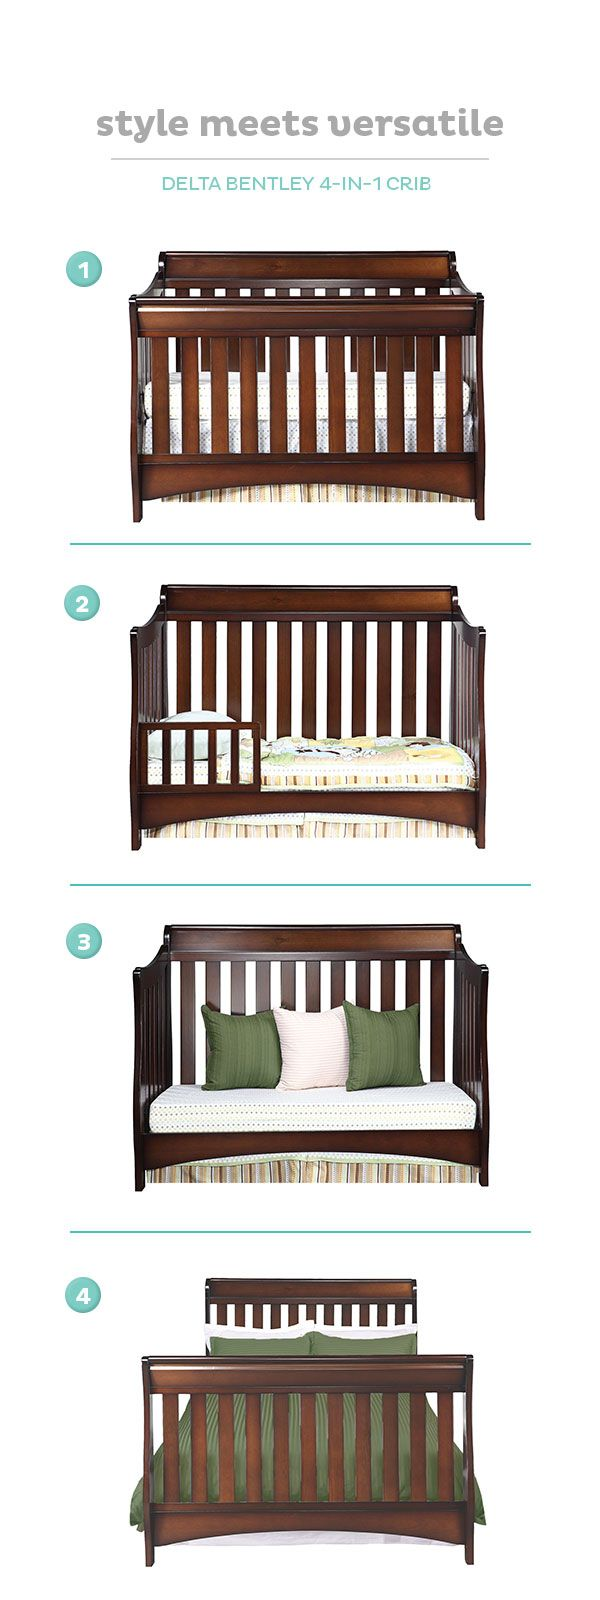 ambiance and delta mattress bennington catching crib bed best convertible baby dark eye bell s bentley delicate valuable bundle the in children cribs sleigh white stunning